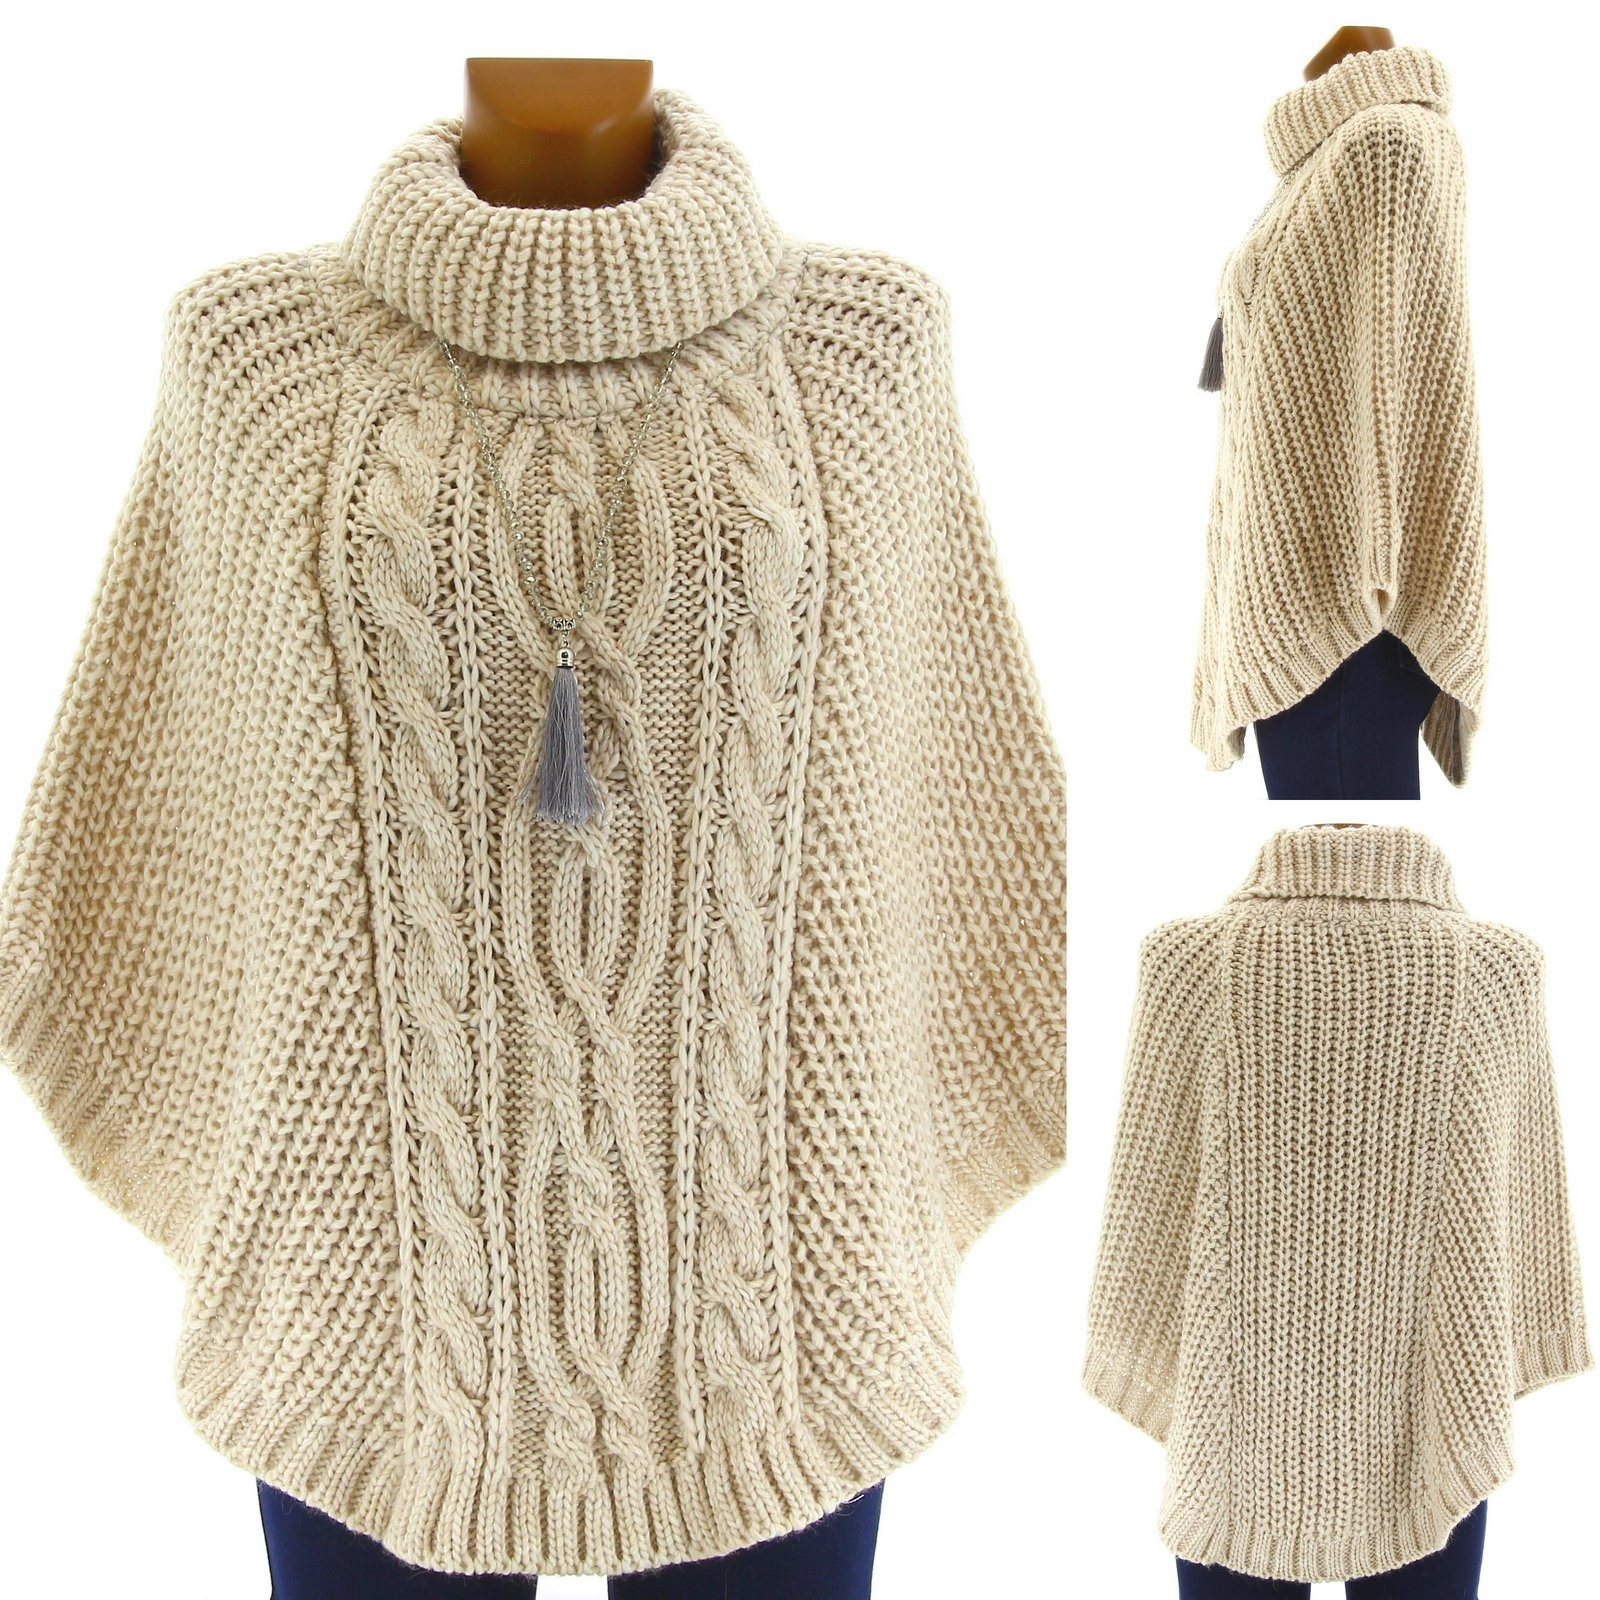 Poncho laine alpaga grosse maille hiver beige elodie - Laine grosse maille ...